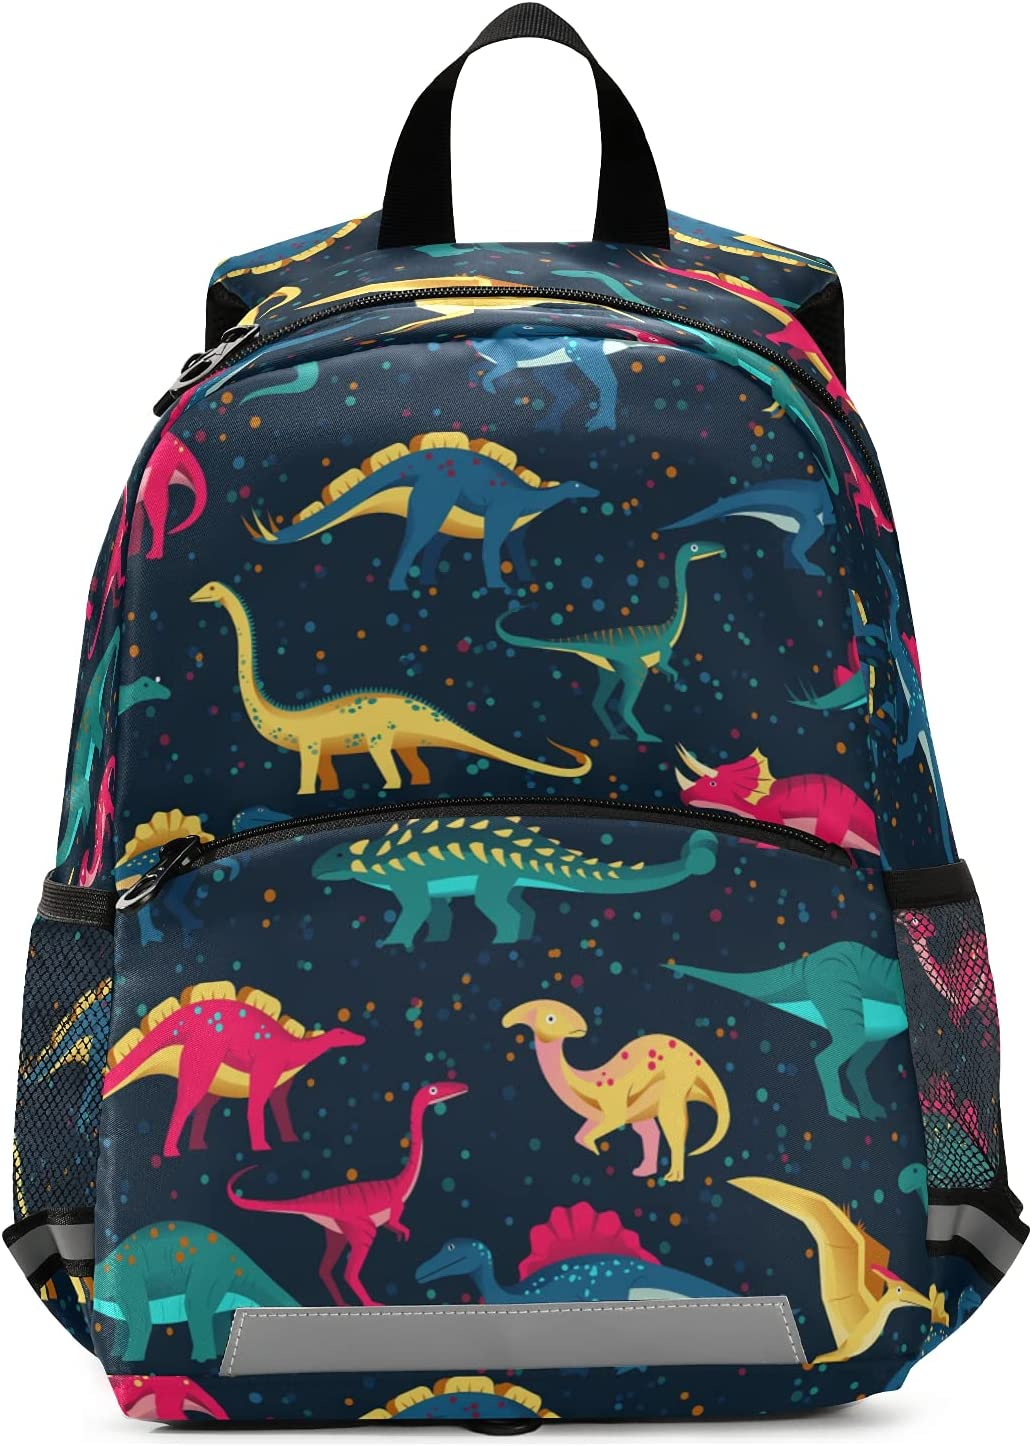 Cute 5 popular Colorful shopping Dinosaurs Toddler Backpack for Kids Girls Age Boy